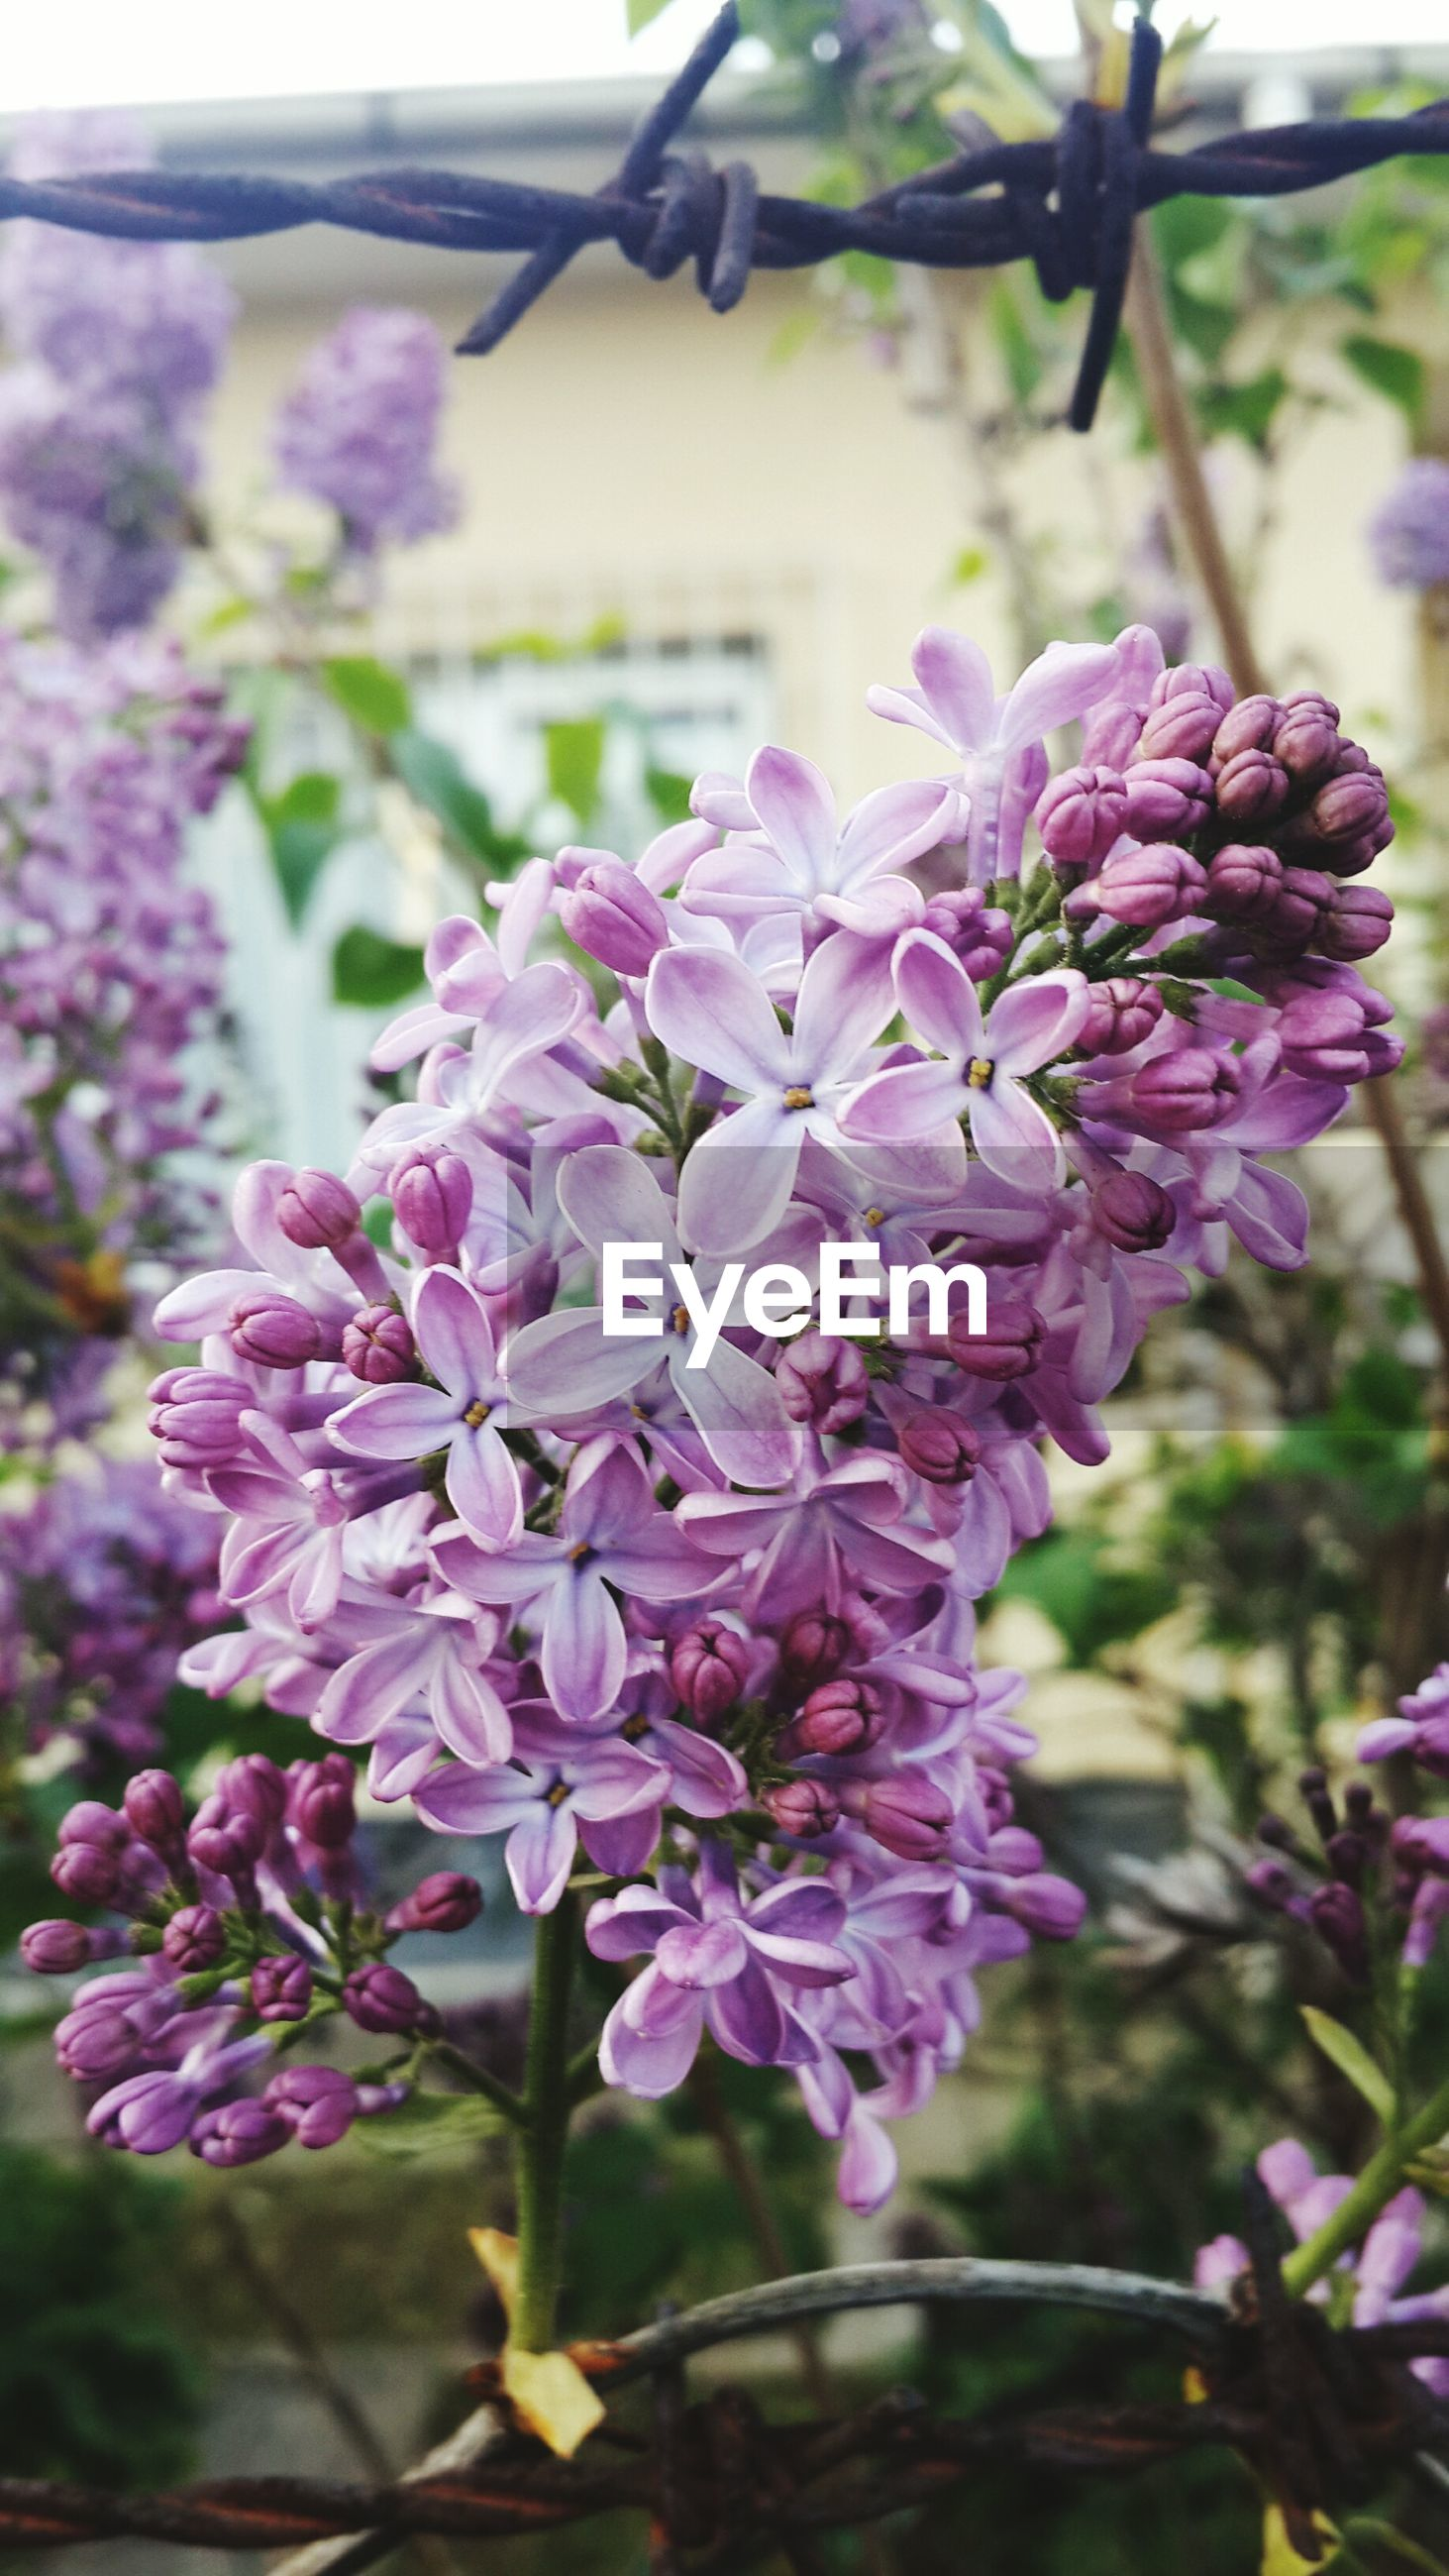 flower, freshness, growth, focus on foreground, fragility, purple, close-up, beauty in nature, petal, nature, pink color, plant, blooming, flower head, in bloom, day, blossom, selective focus, park - man made space, outdoors